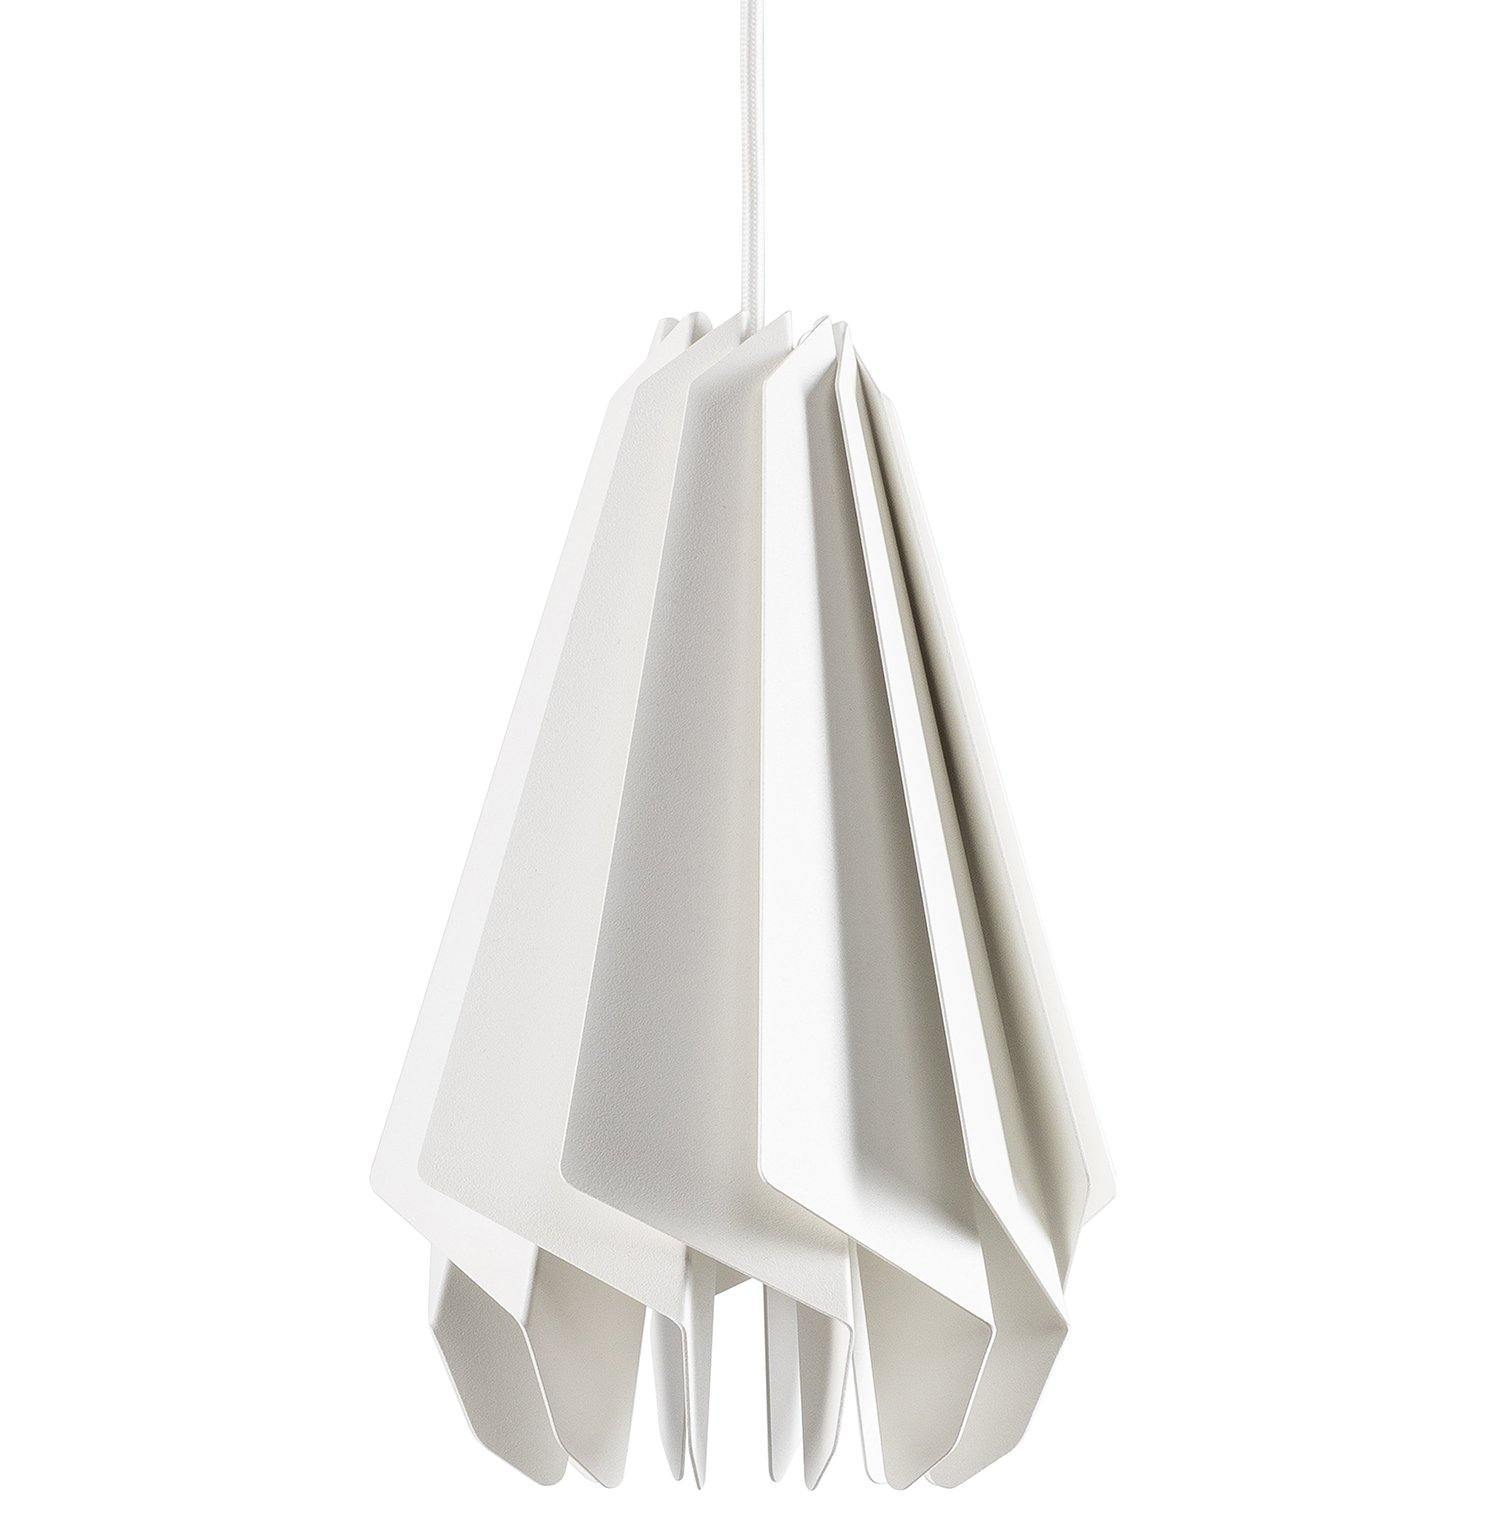 Limited Edition X897 Pendant Lamp Pendant Lamp X897 Furniture  White